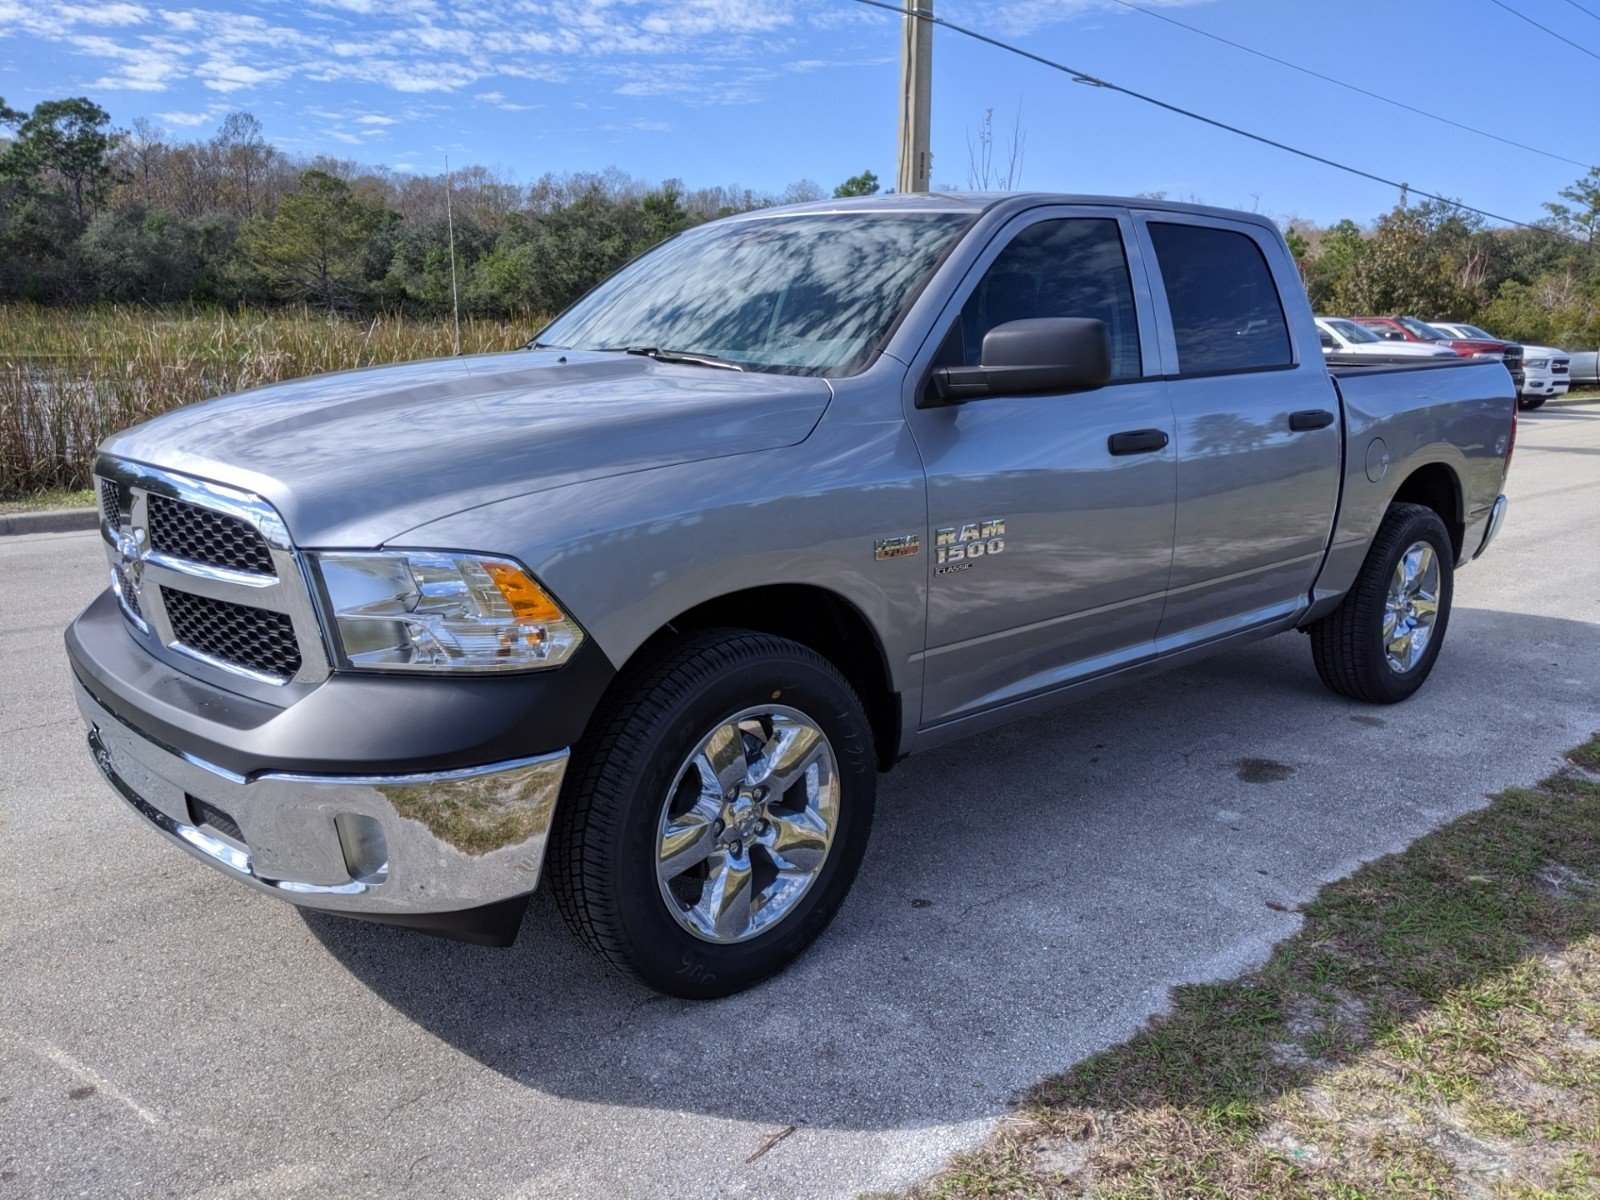 2019 Ram 1500 Crew Cab 4x2, Pickup #R19893 - photo 1